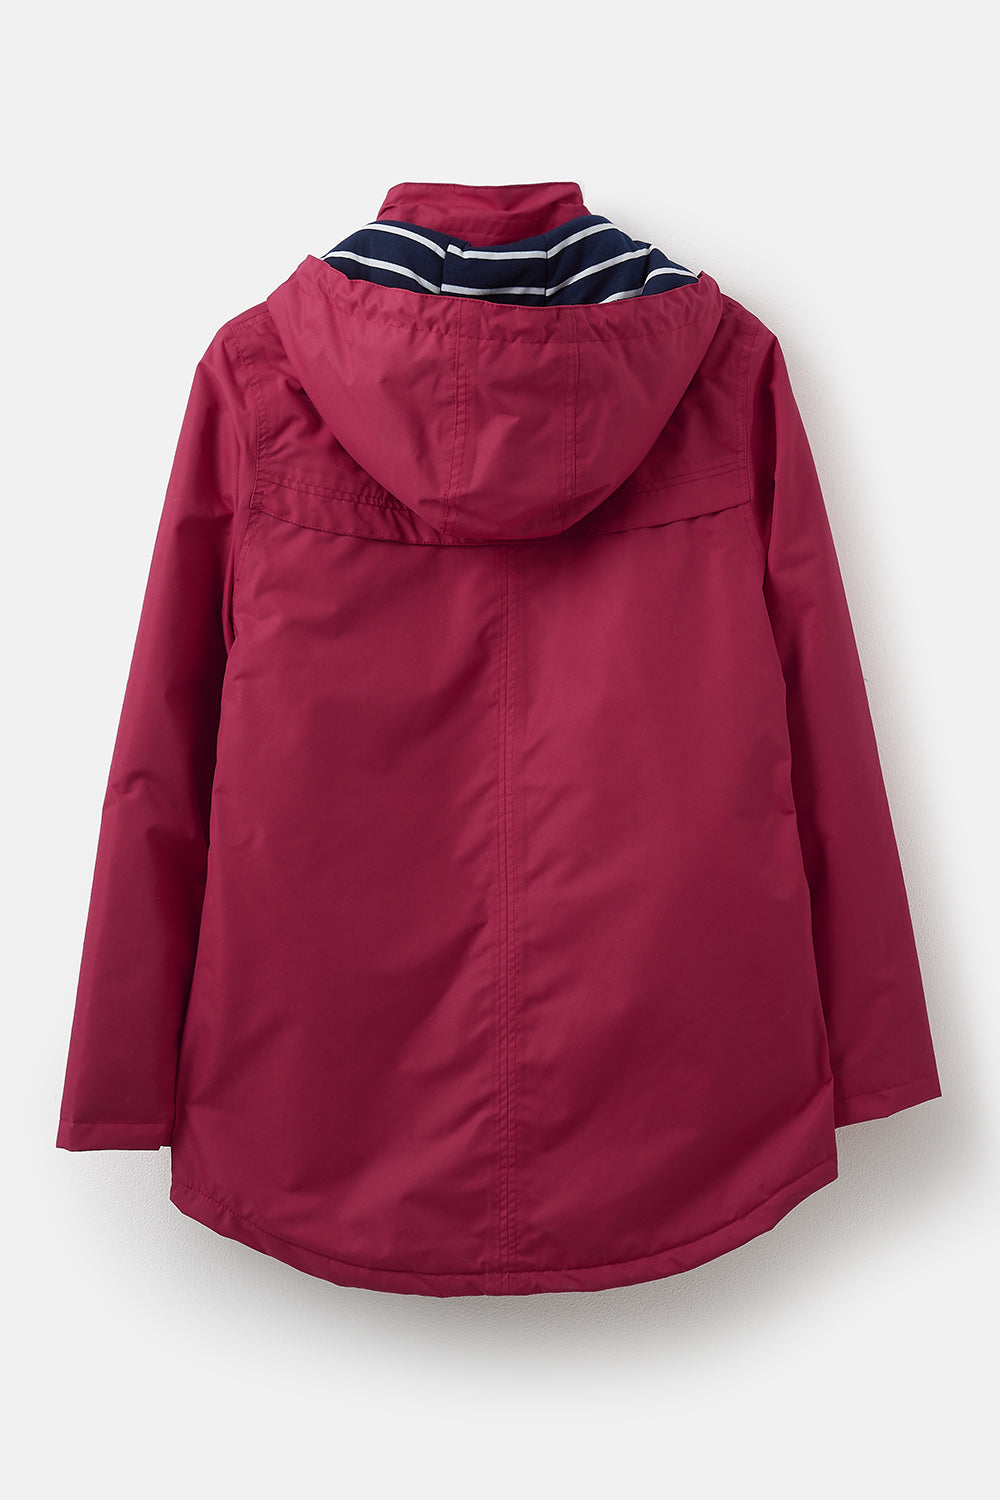 Lighthouse Iona Womens Warm Waterproof Raincoat - Red